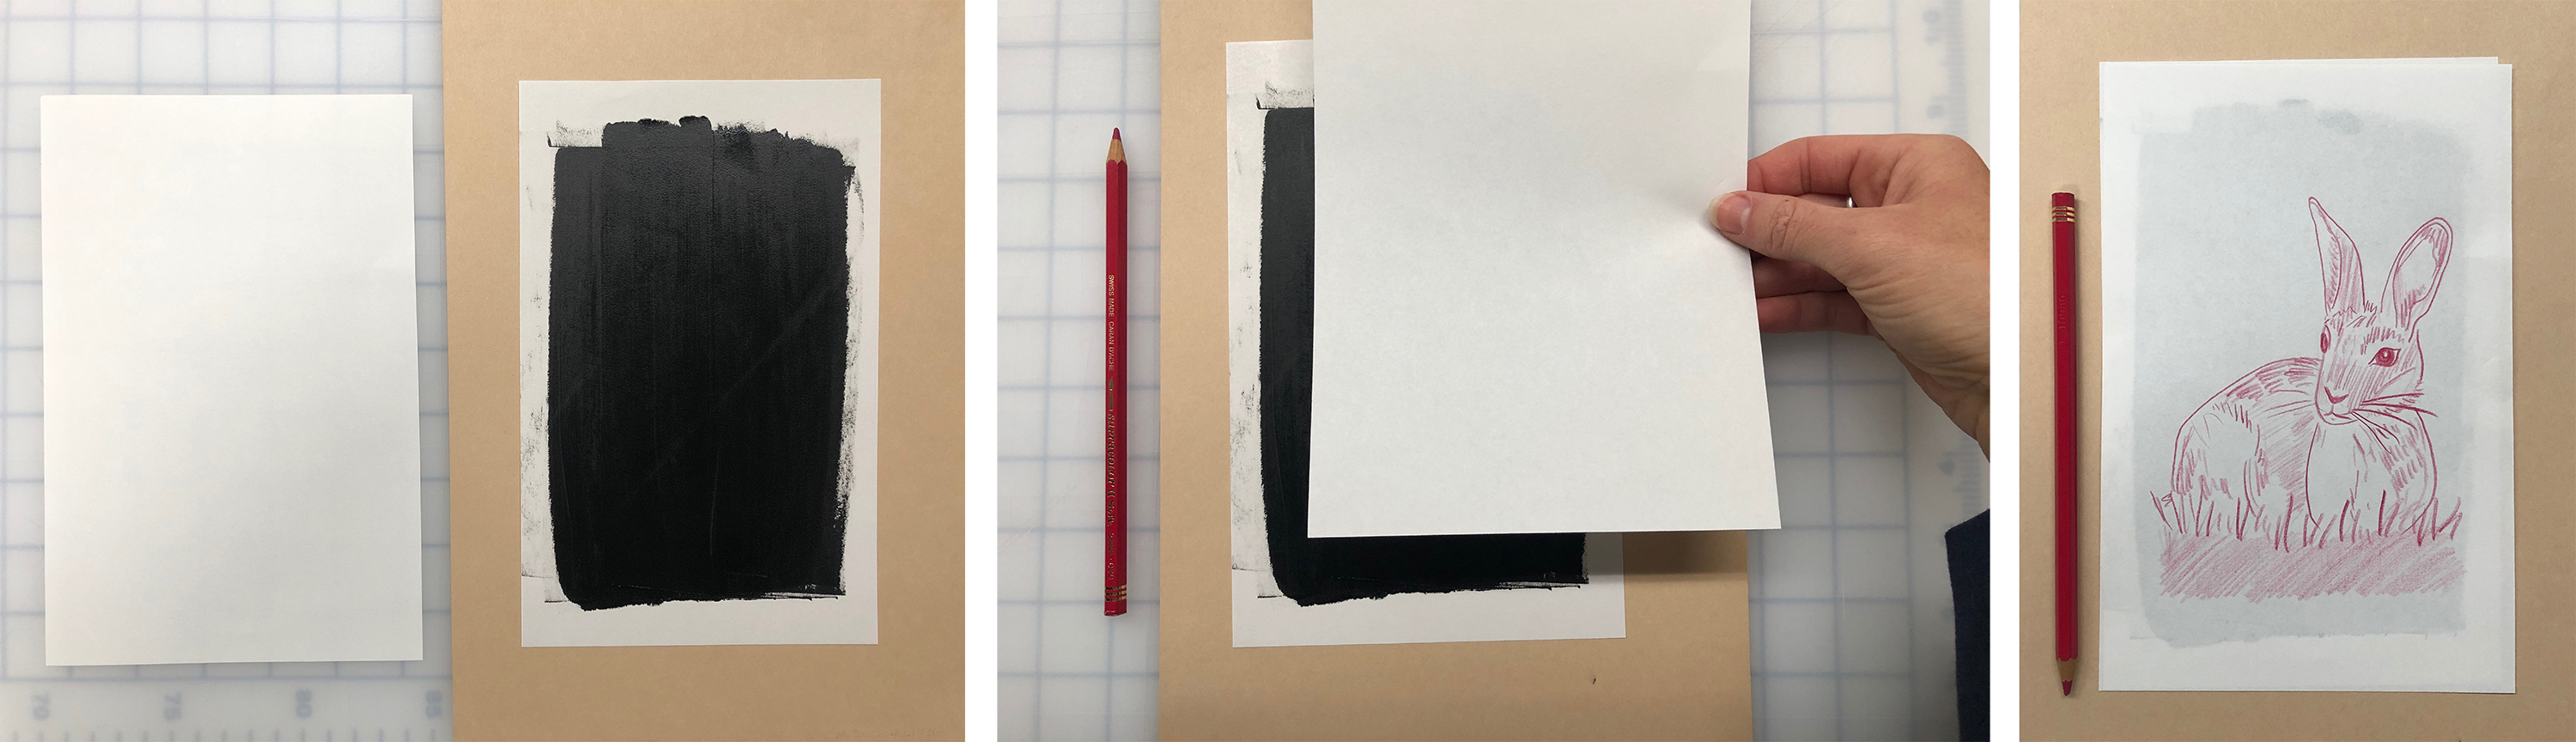 From left: Materials used include paper and inked paper matrix; Placing clean paper atop inked paper; Image drawn on back of clean paper